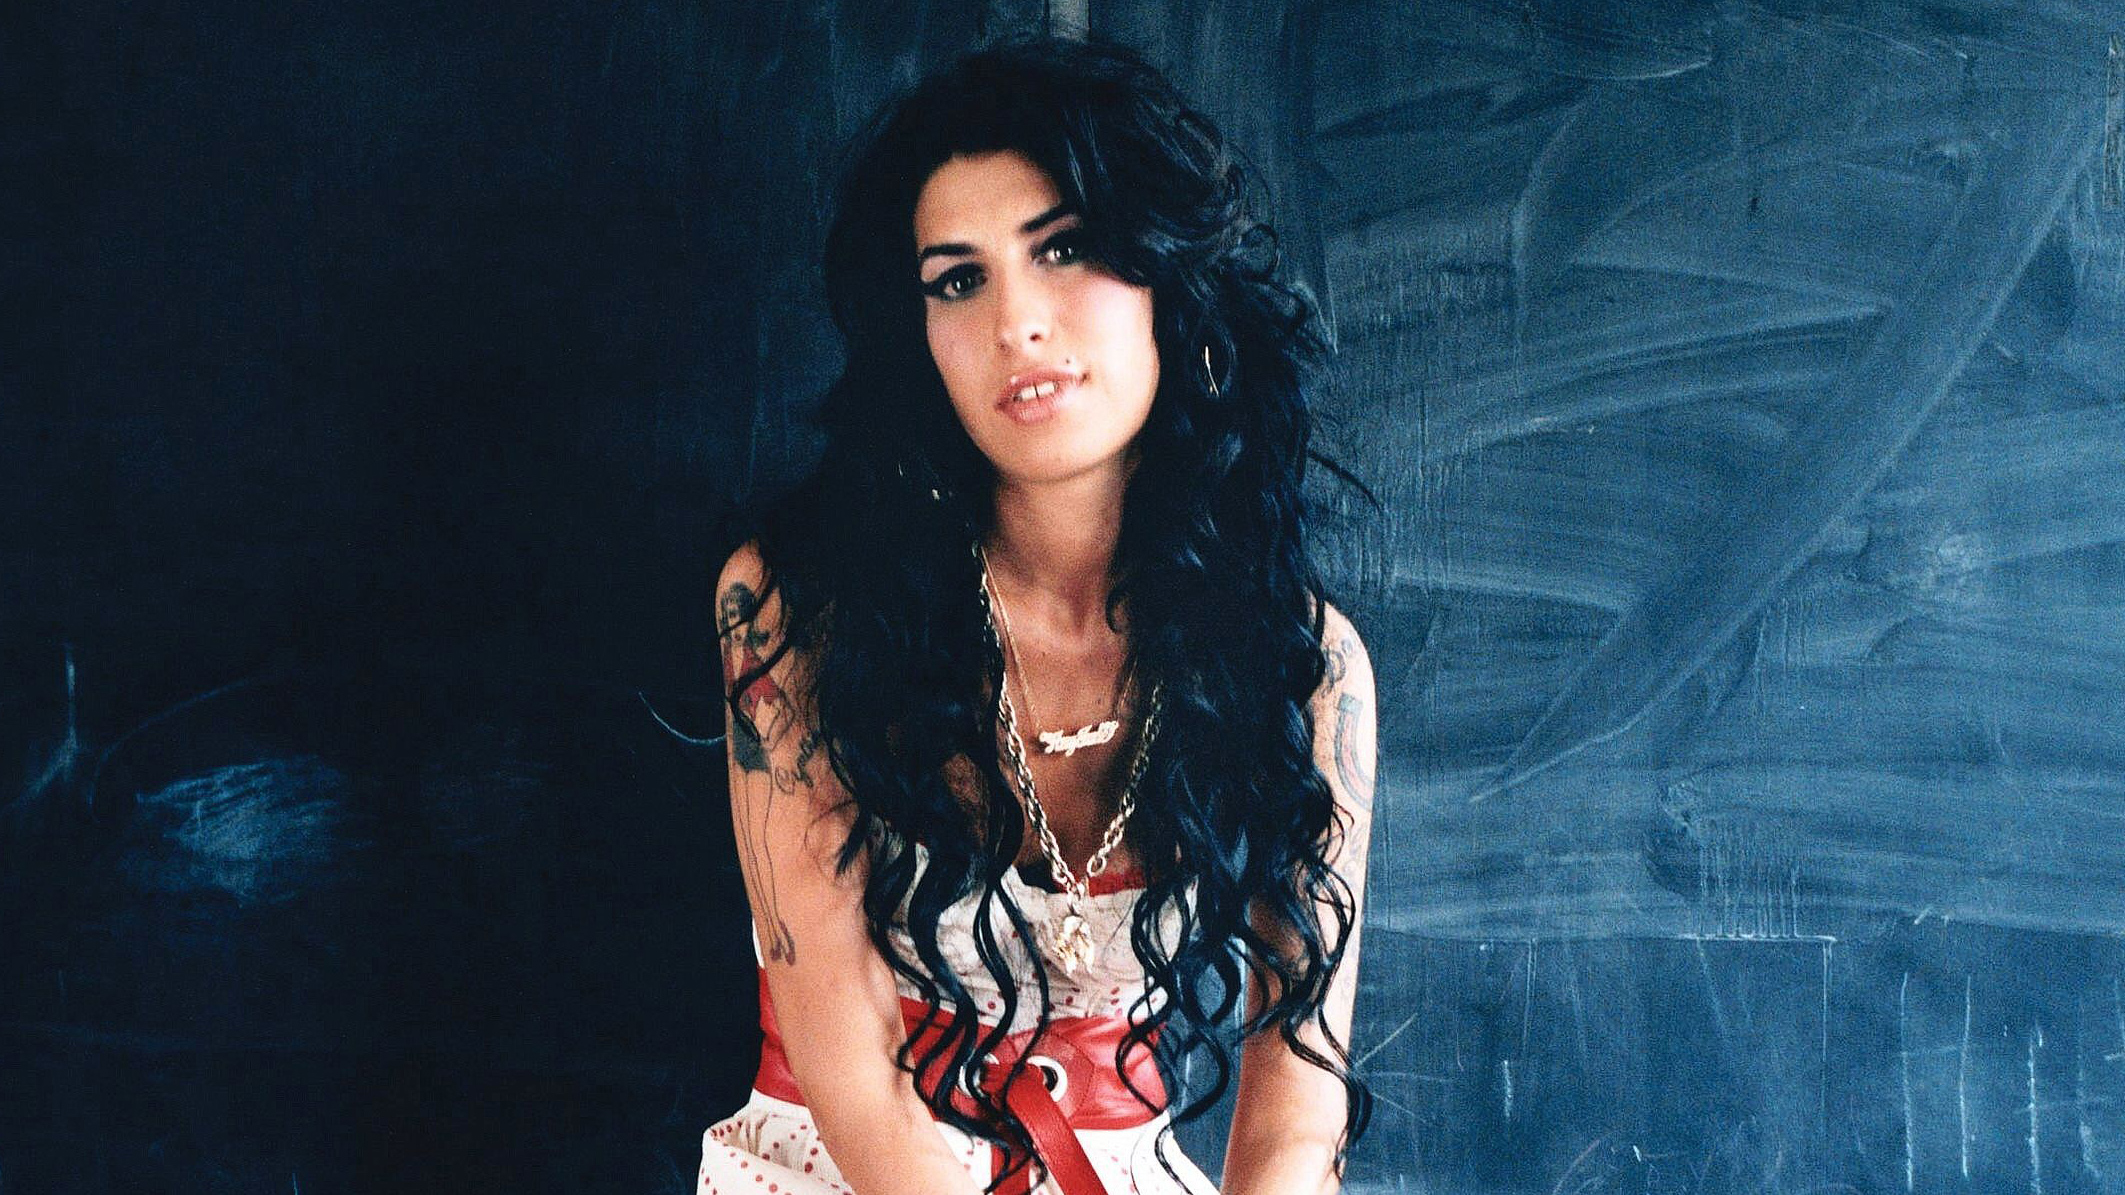 38d069213c2d75 Amy Winehouse, the Grammy-winning British retro-soul singer whose  remarkable musical achievements were often overshadowed by her tumultuous  personal life, ...